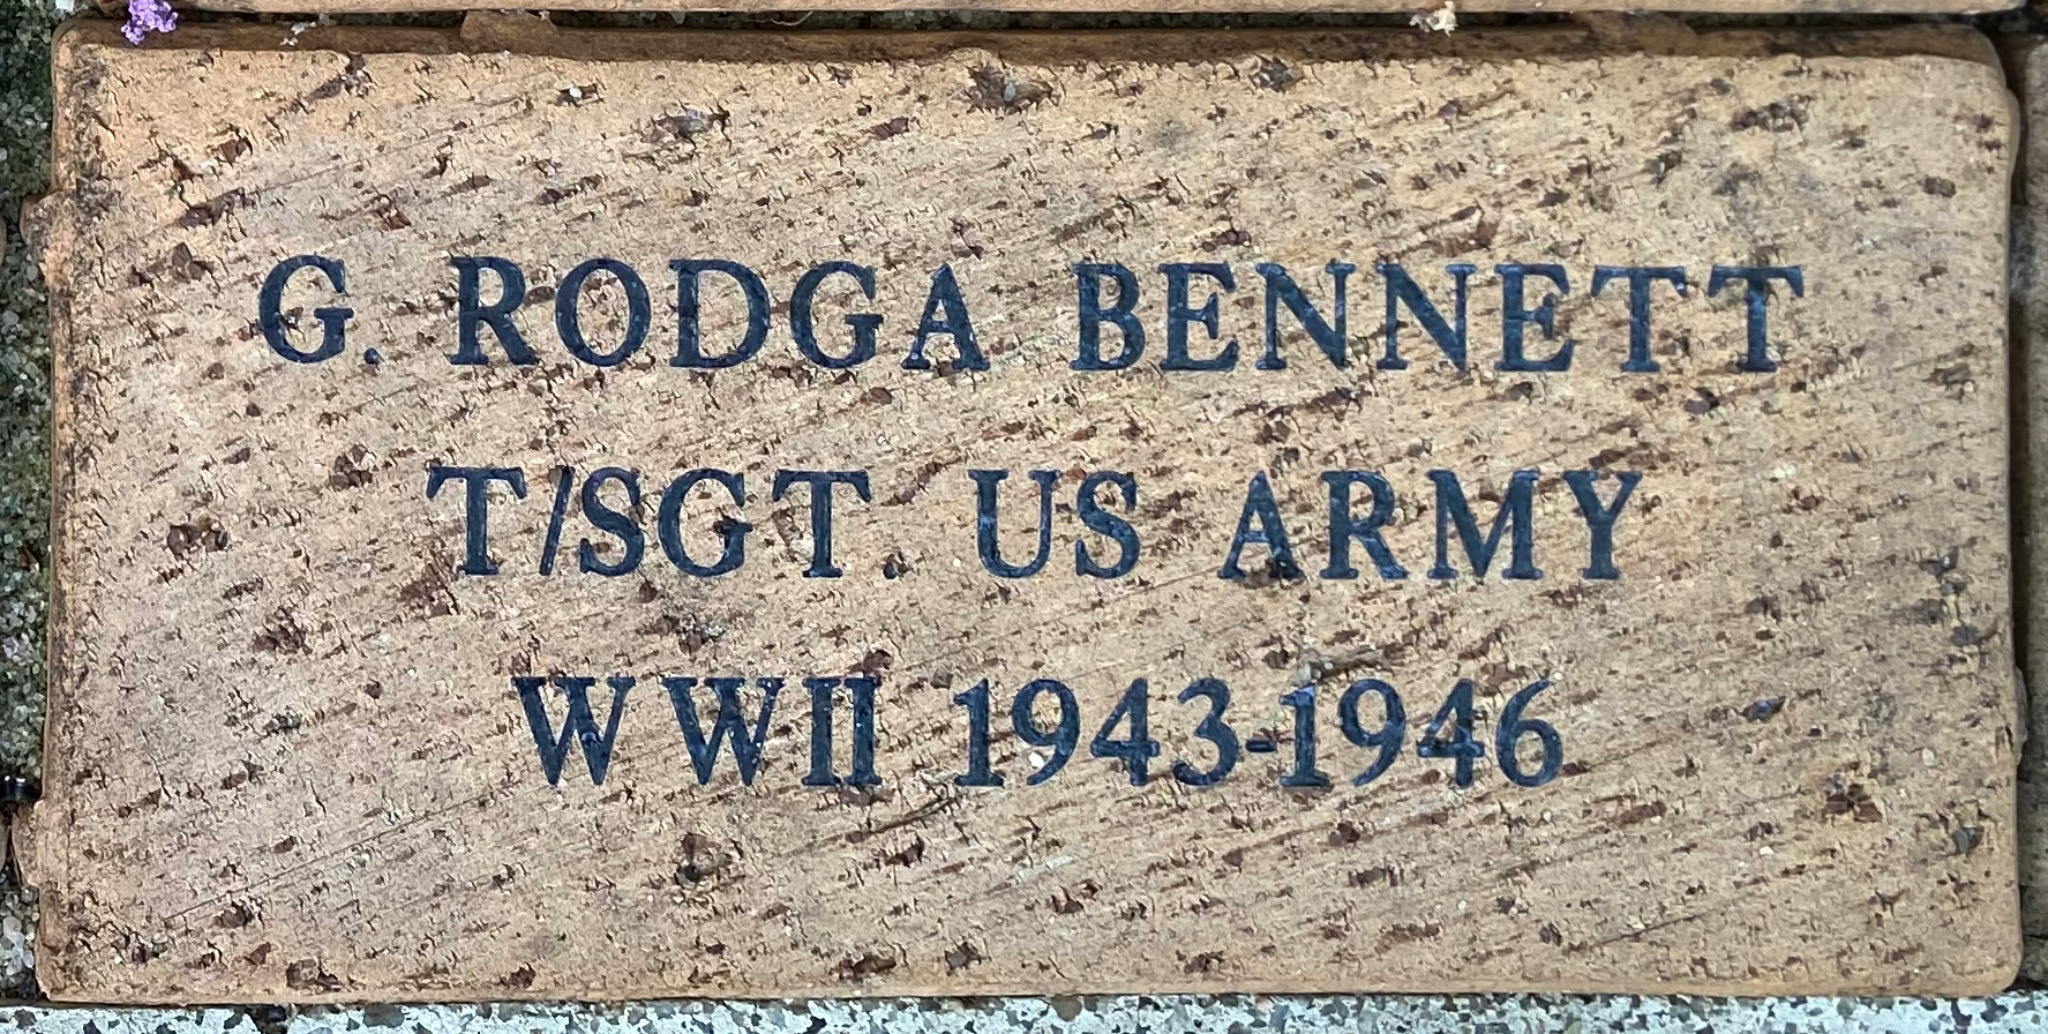 G. RODGA BENNETT T/SGT US ARMY WWII 1943-1946